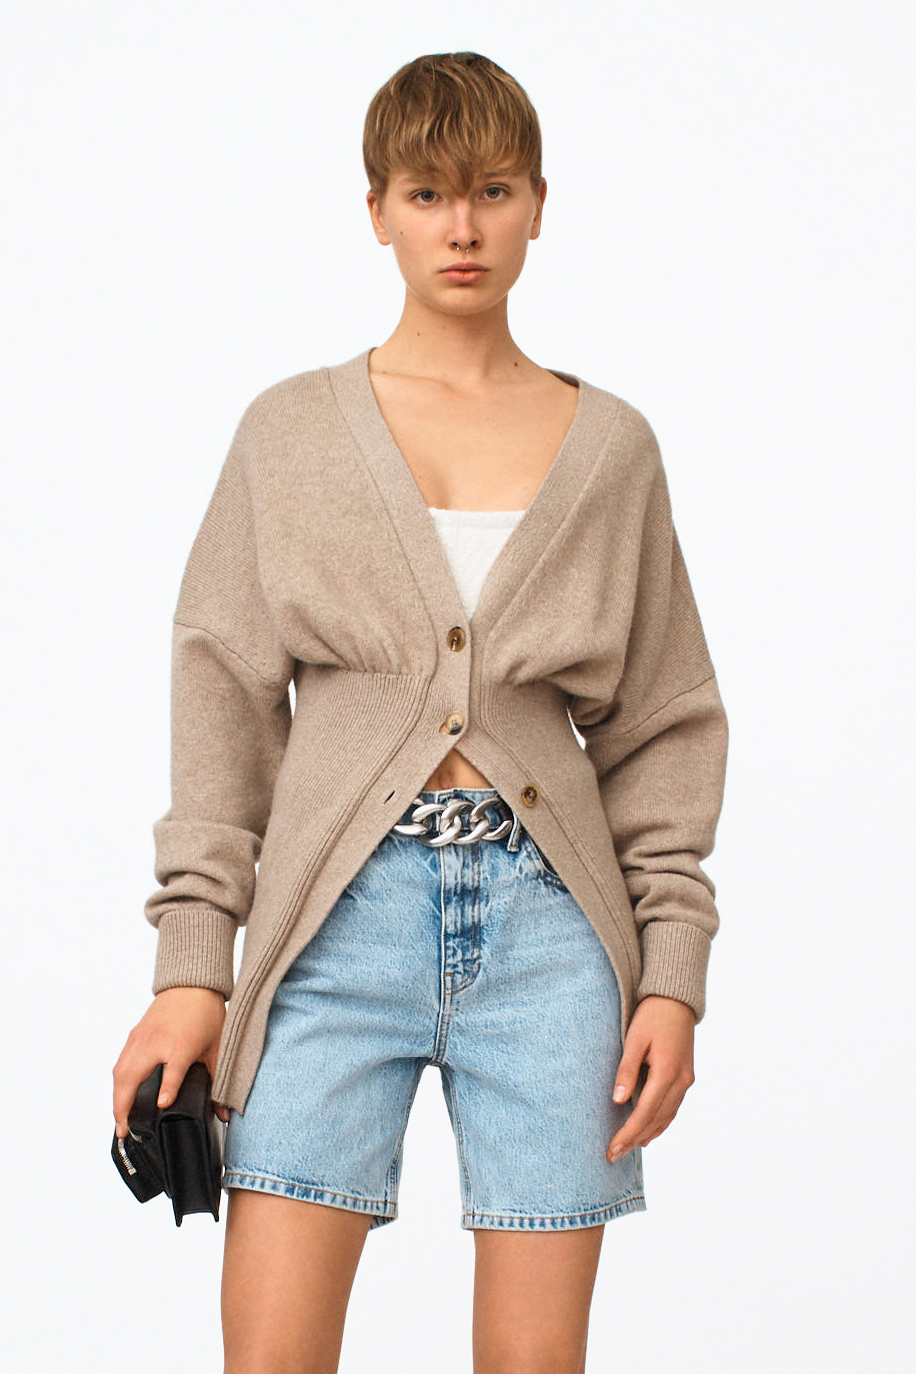 V NECK CARDIGAN FOR WOMEN SEXY PARTY SWEATER  SMOCKED WAIST CARDIGAN